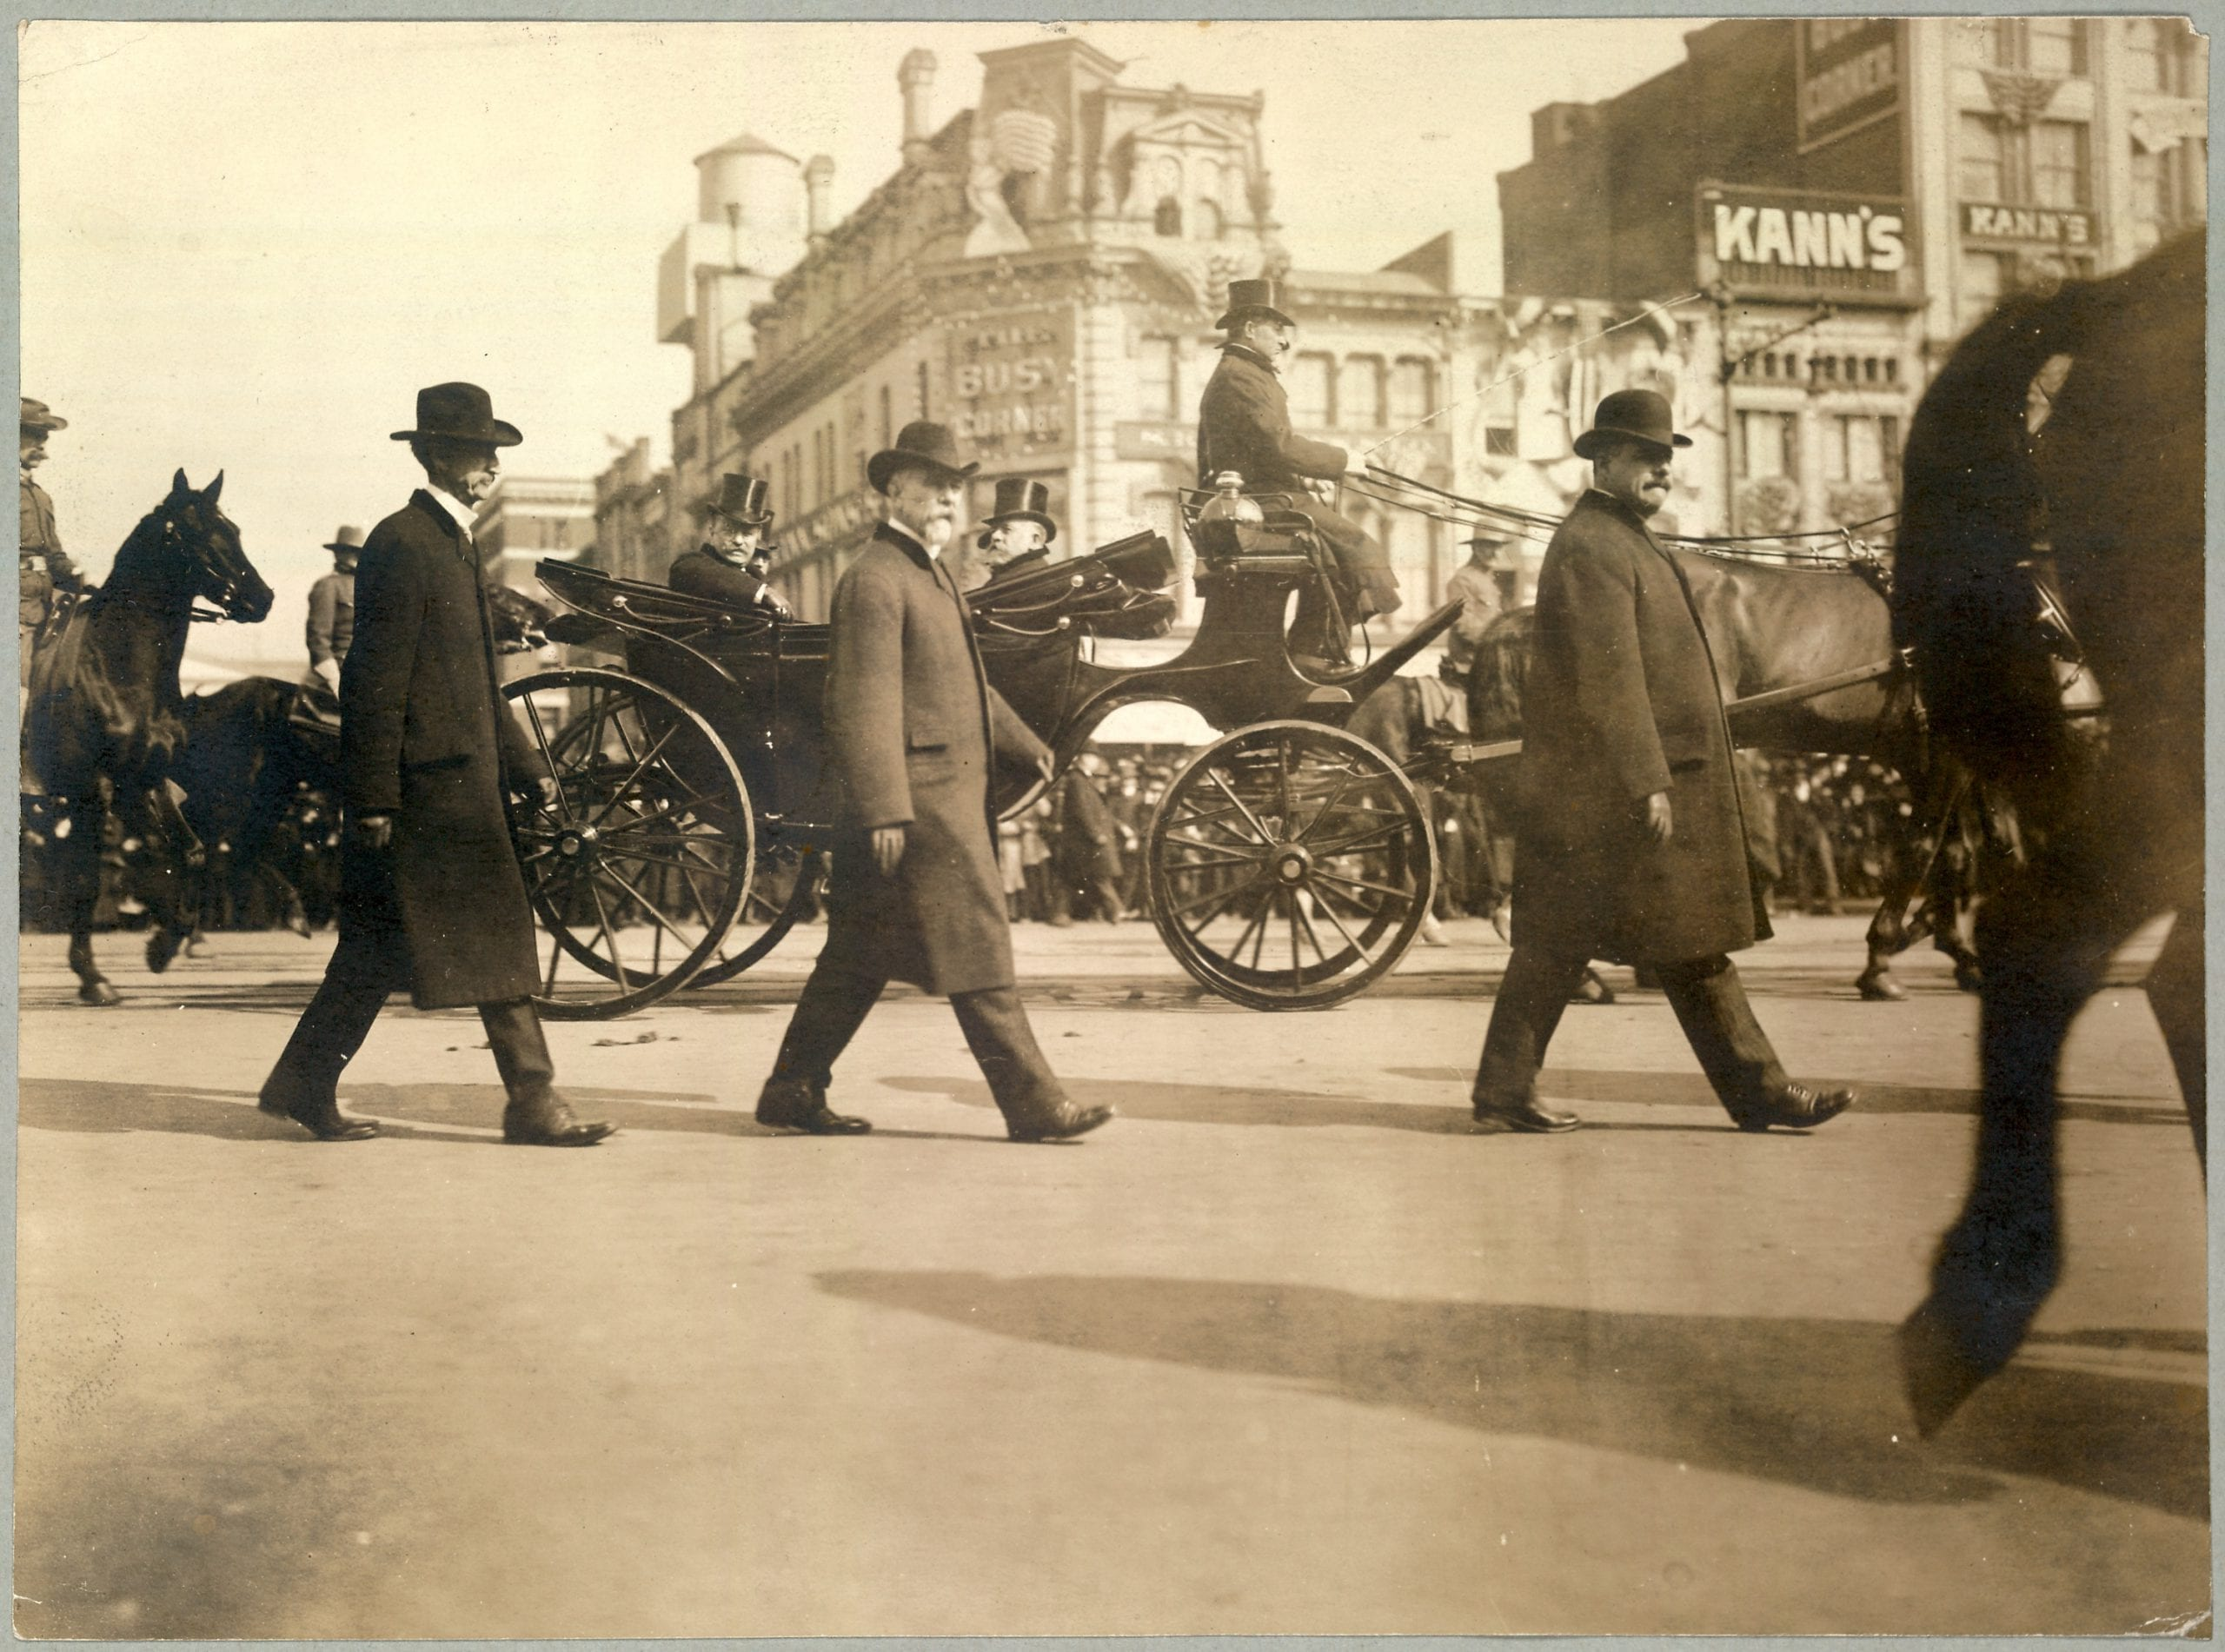 Amazing Photographs of Teddy Roosevelt's Inauguration in 1905